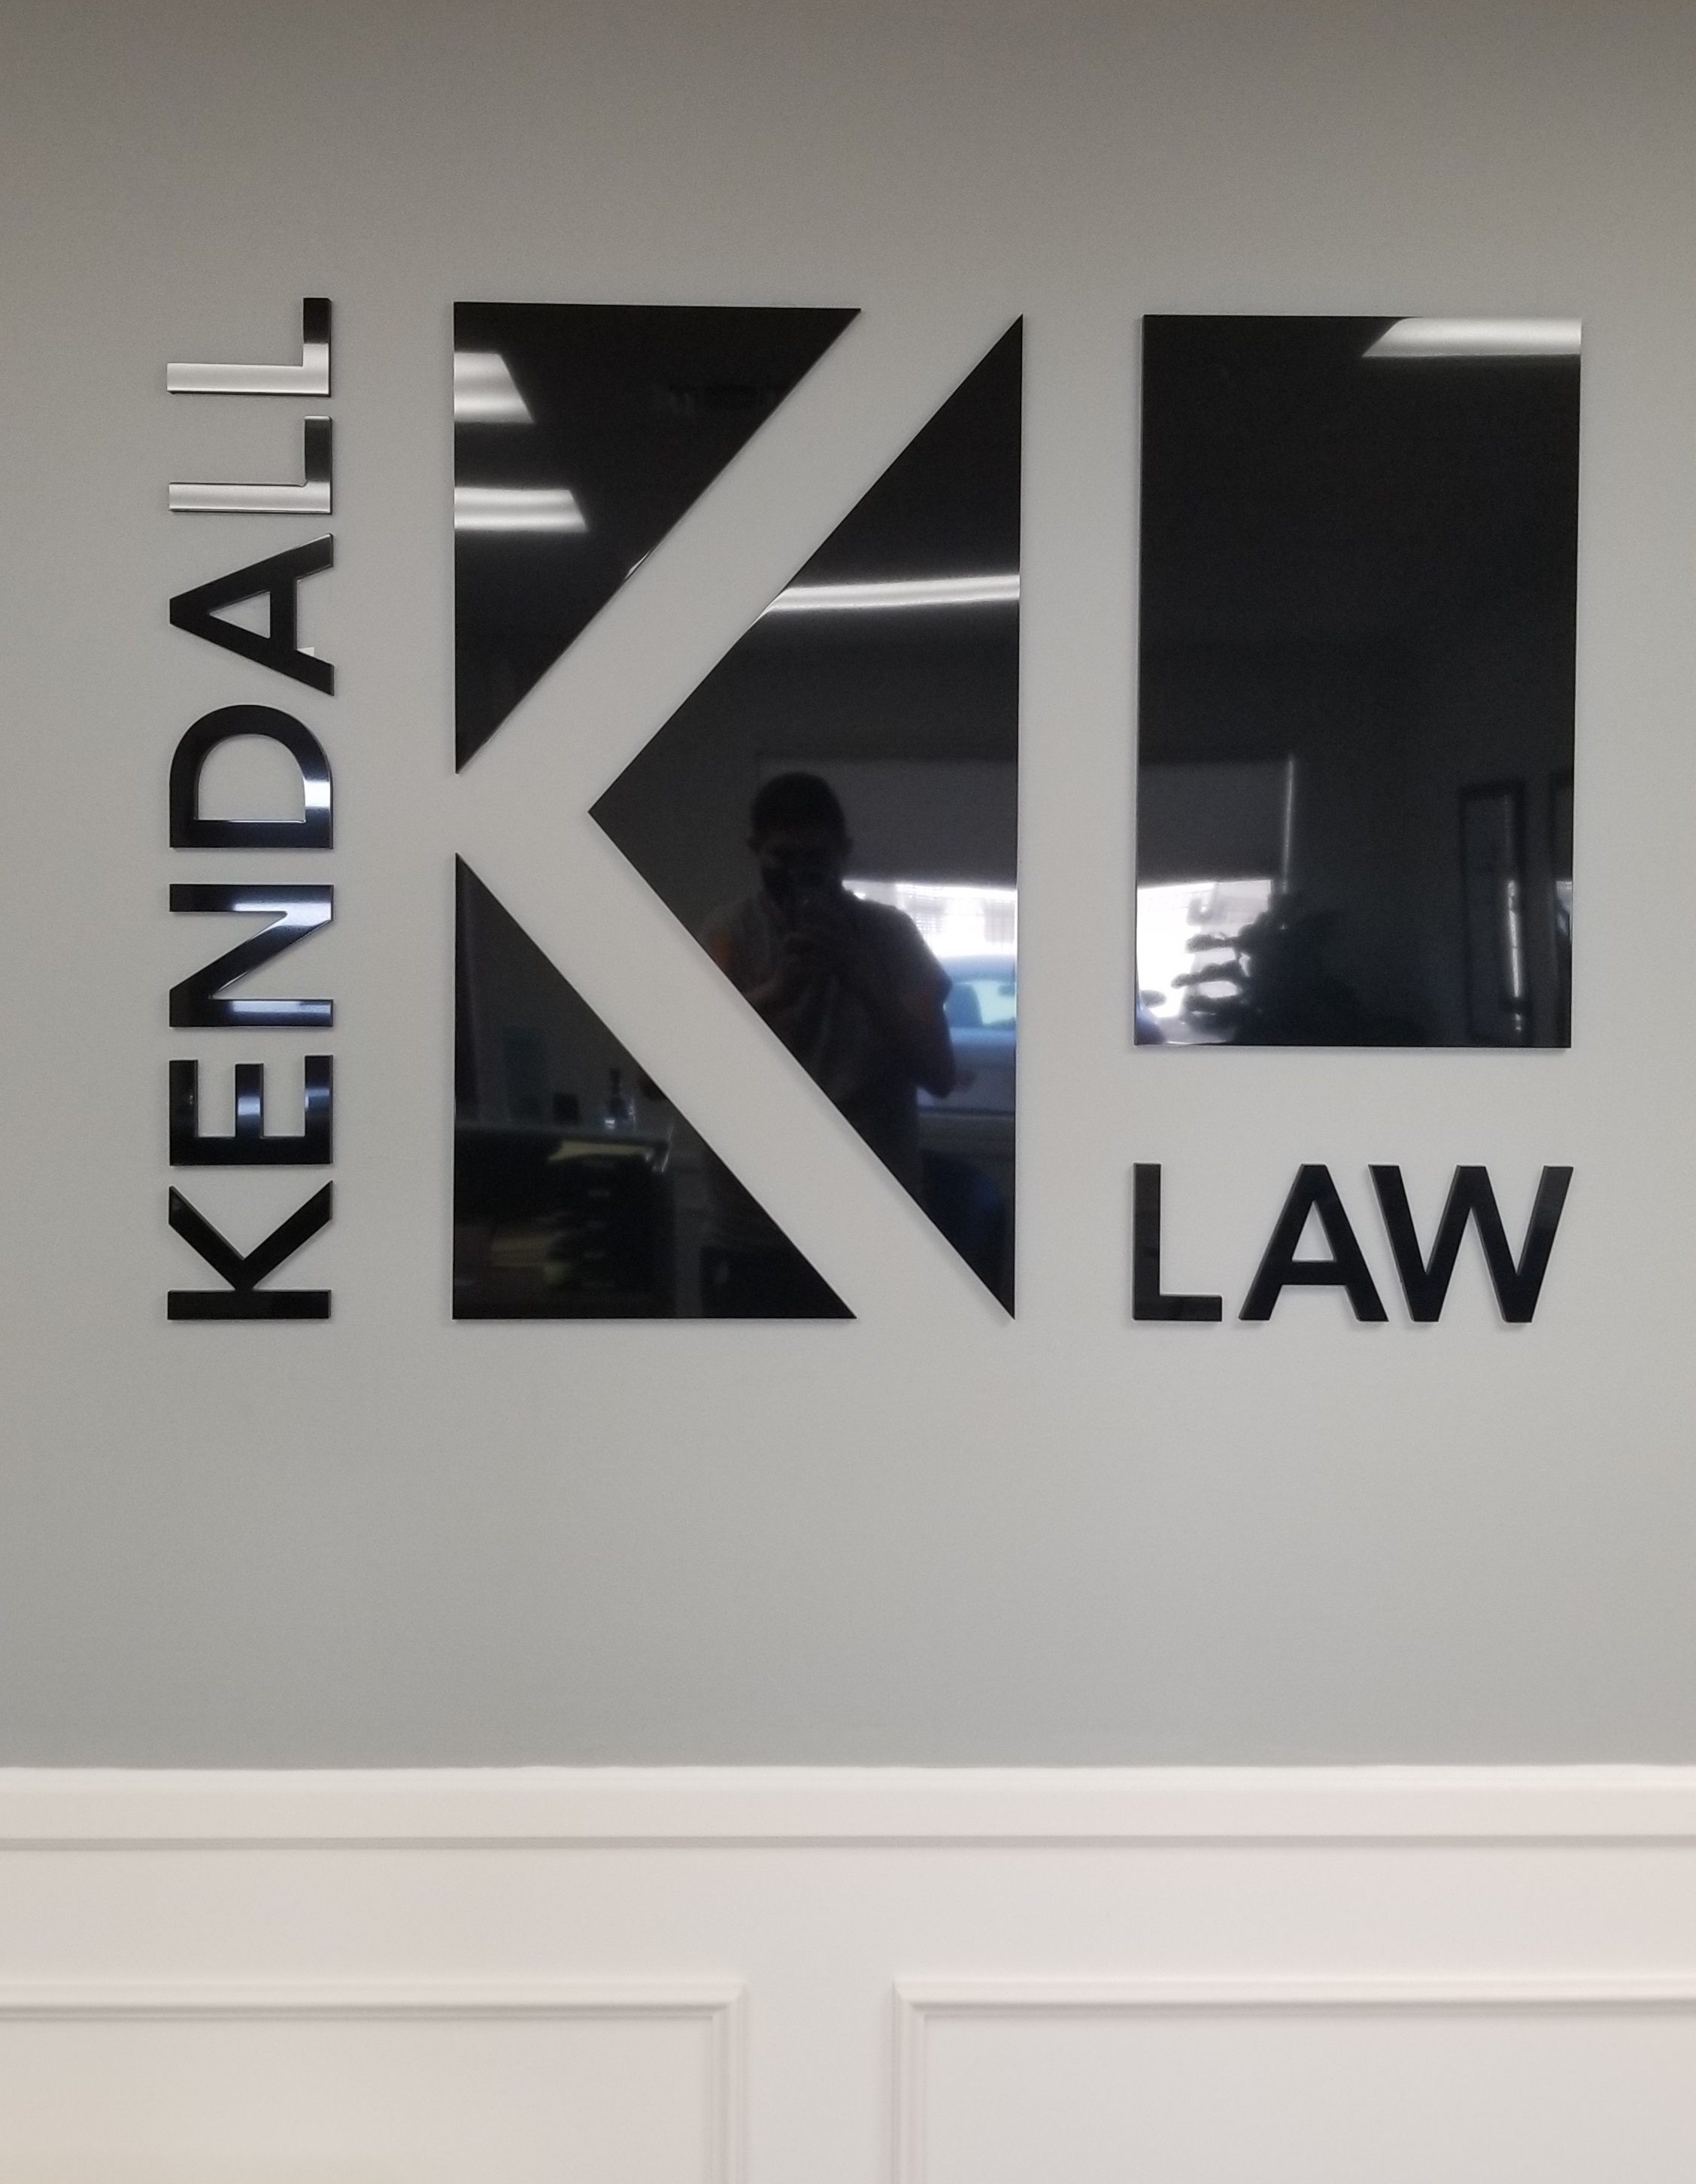 This is the law office lobby sign for Kendall Law. With this, the Torrance firm has a prominent centerpiece in their reception area.